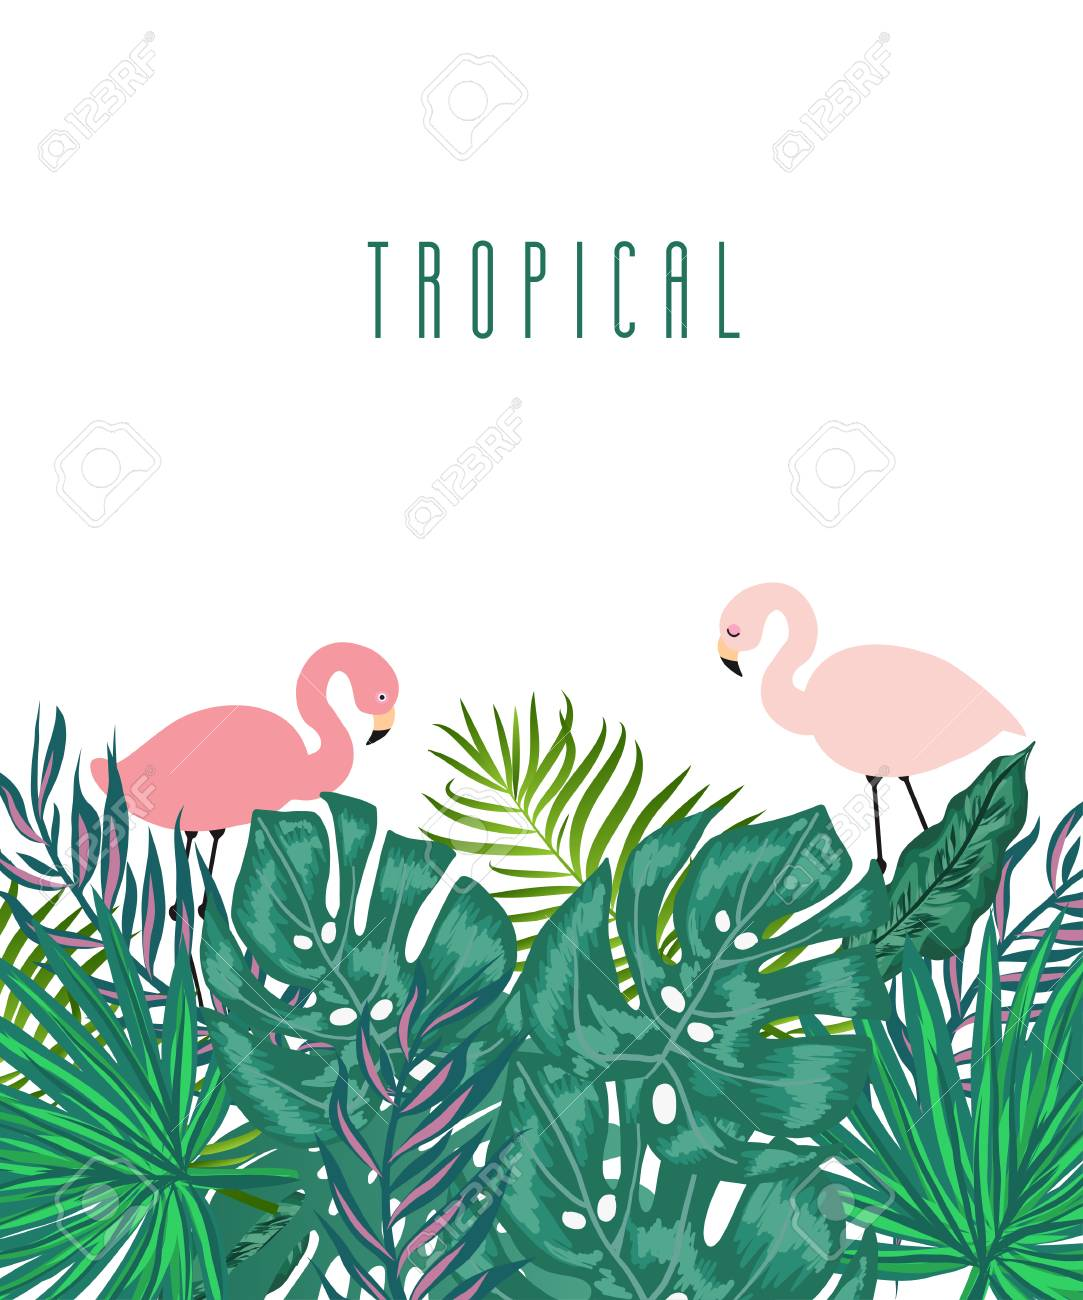 Summer Tropical Background : summer, tropical, background, Vertical, Green, Summer, Tropical, Background, Exotic, Leaves.., Royalty, Cliparts,, Vectors,, Stock, Illustration., Image, 96313270.